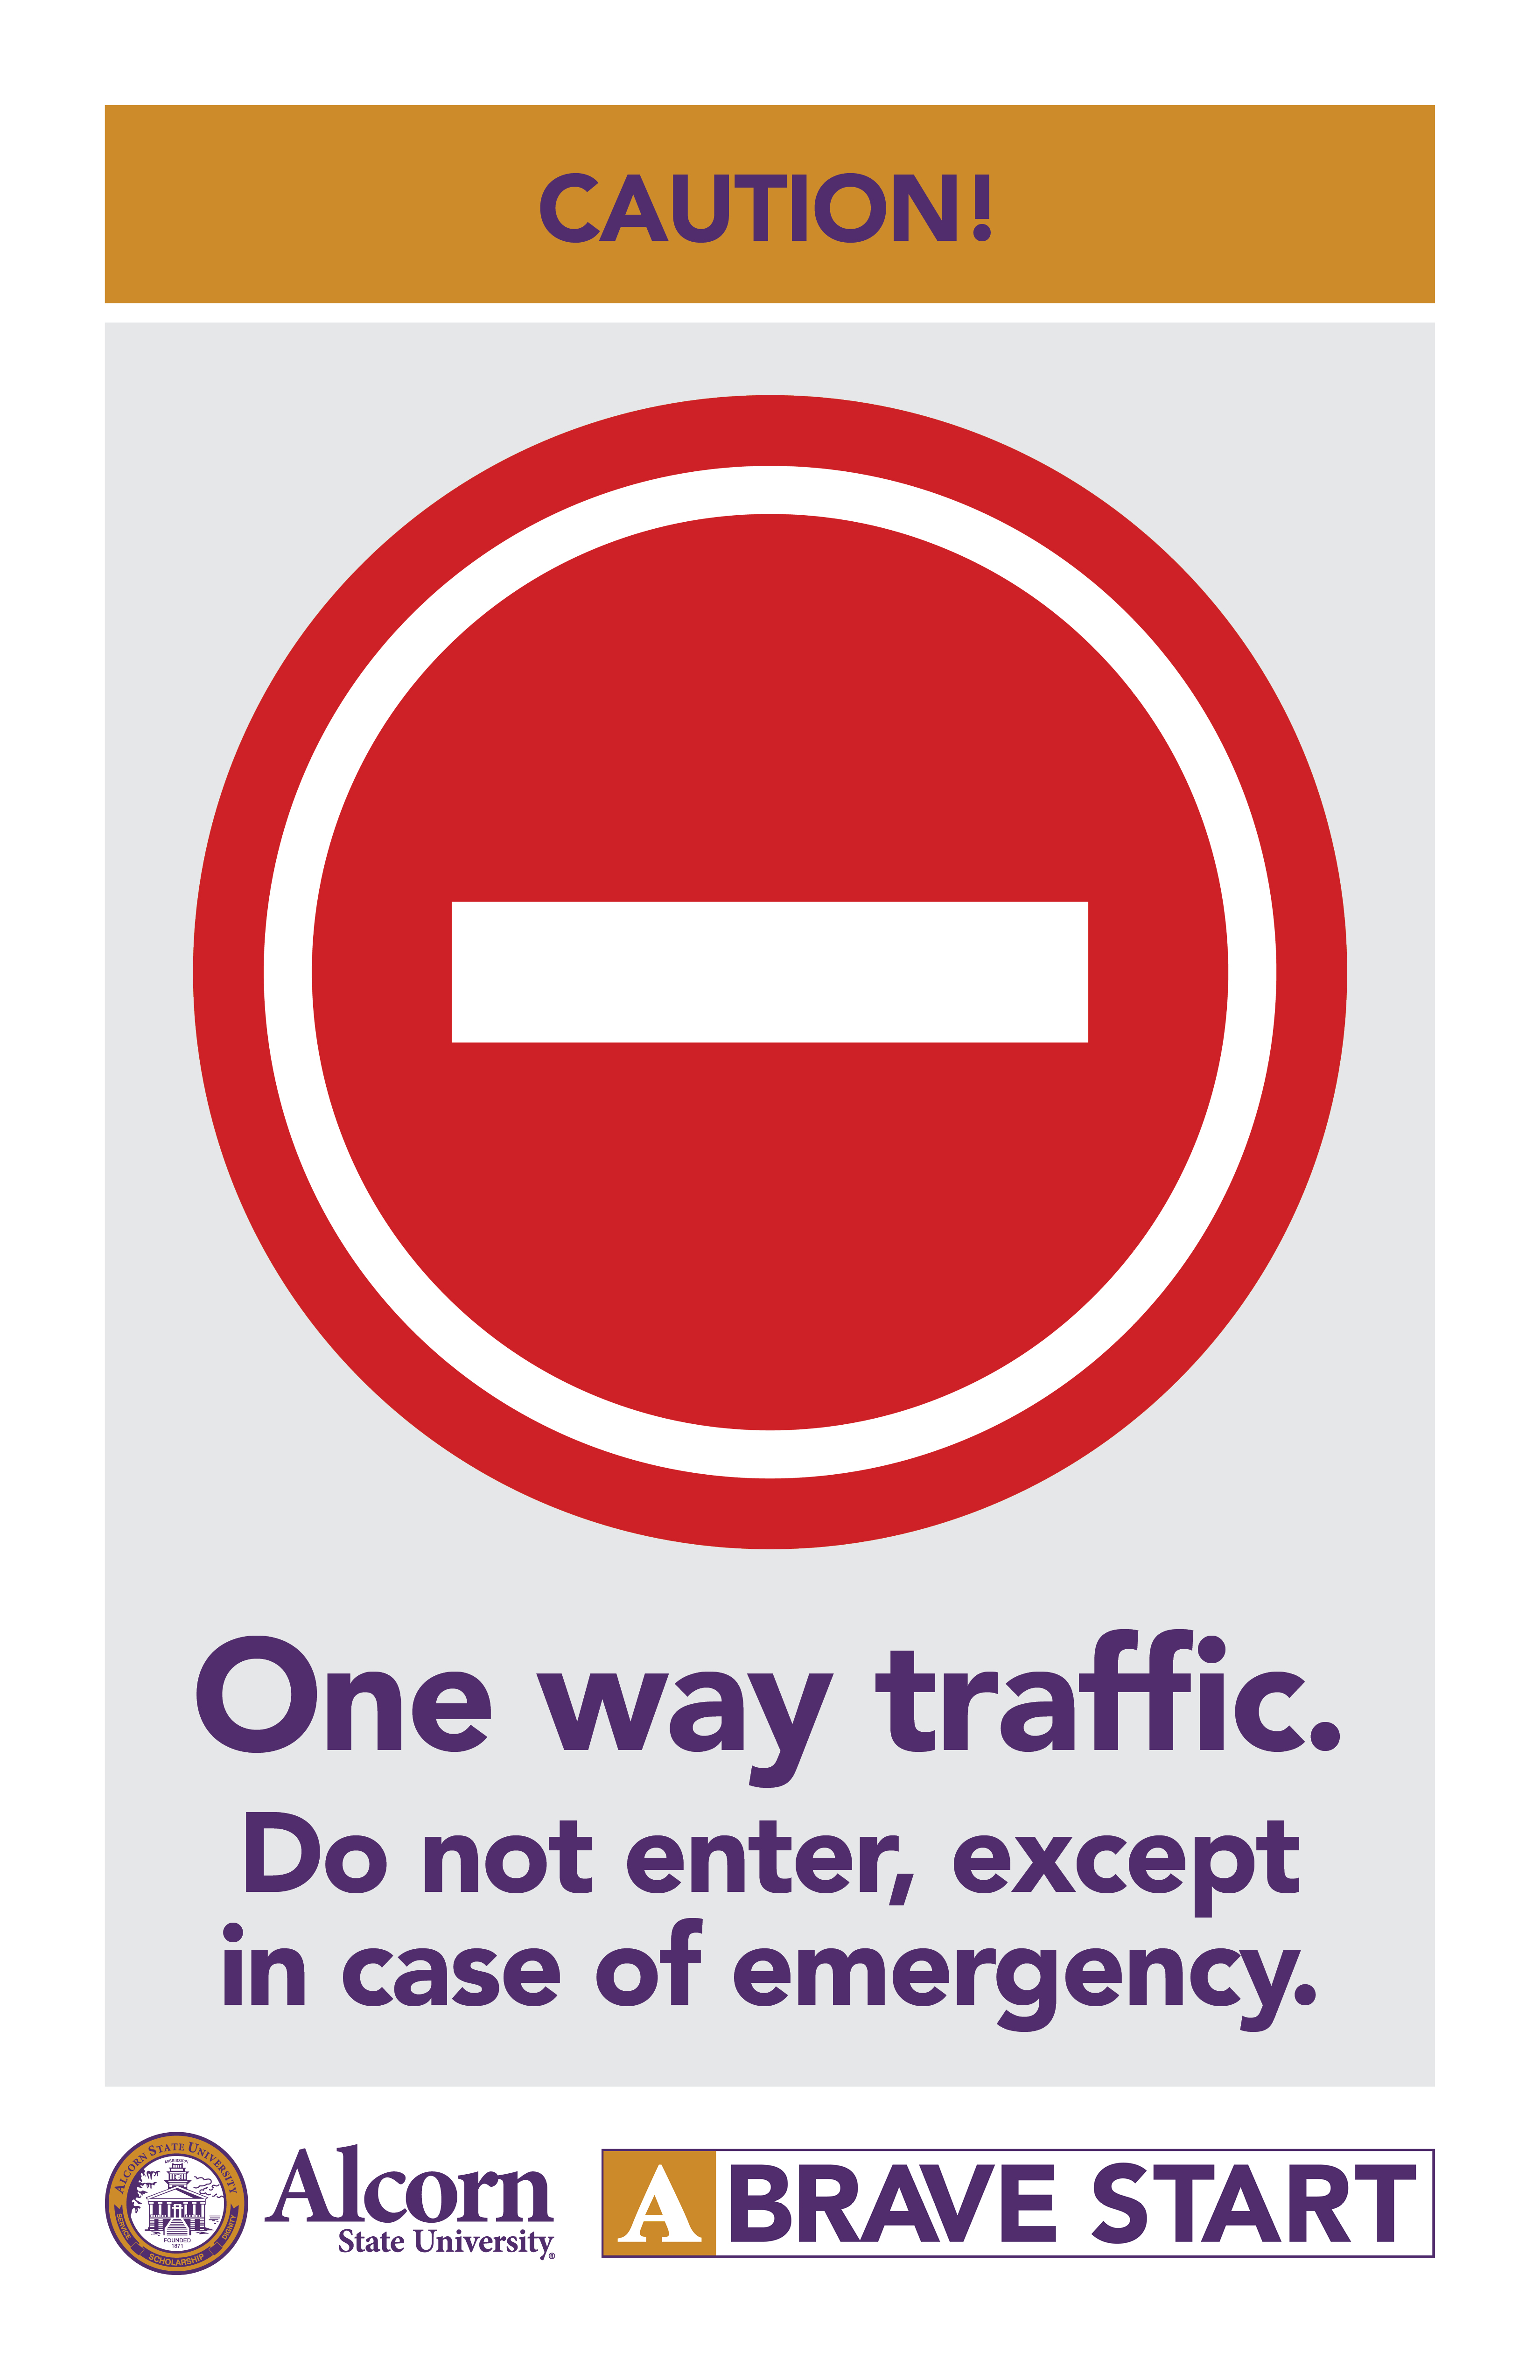 CAUTION! (Picture of no entry red circle) One way traffic. Do not enter, except in case of emergency. (Alcorn logo mark. A Brave Start logo mark.)